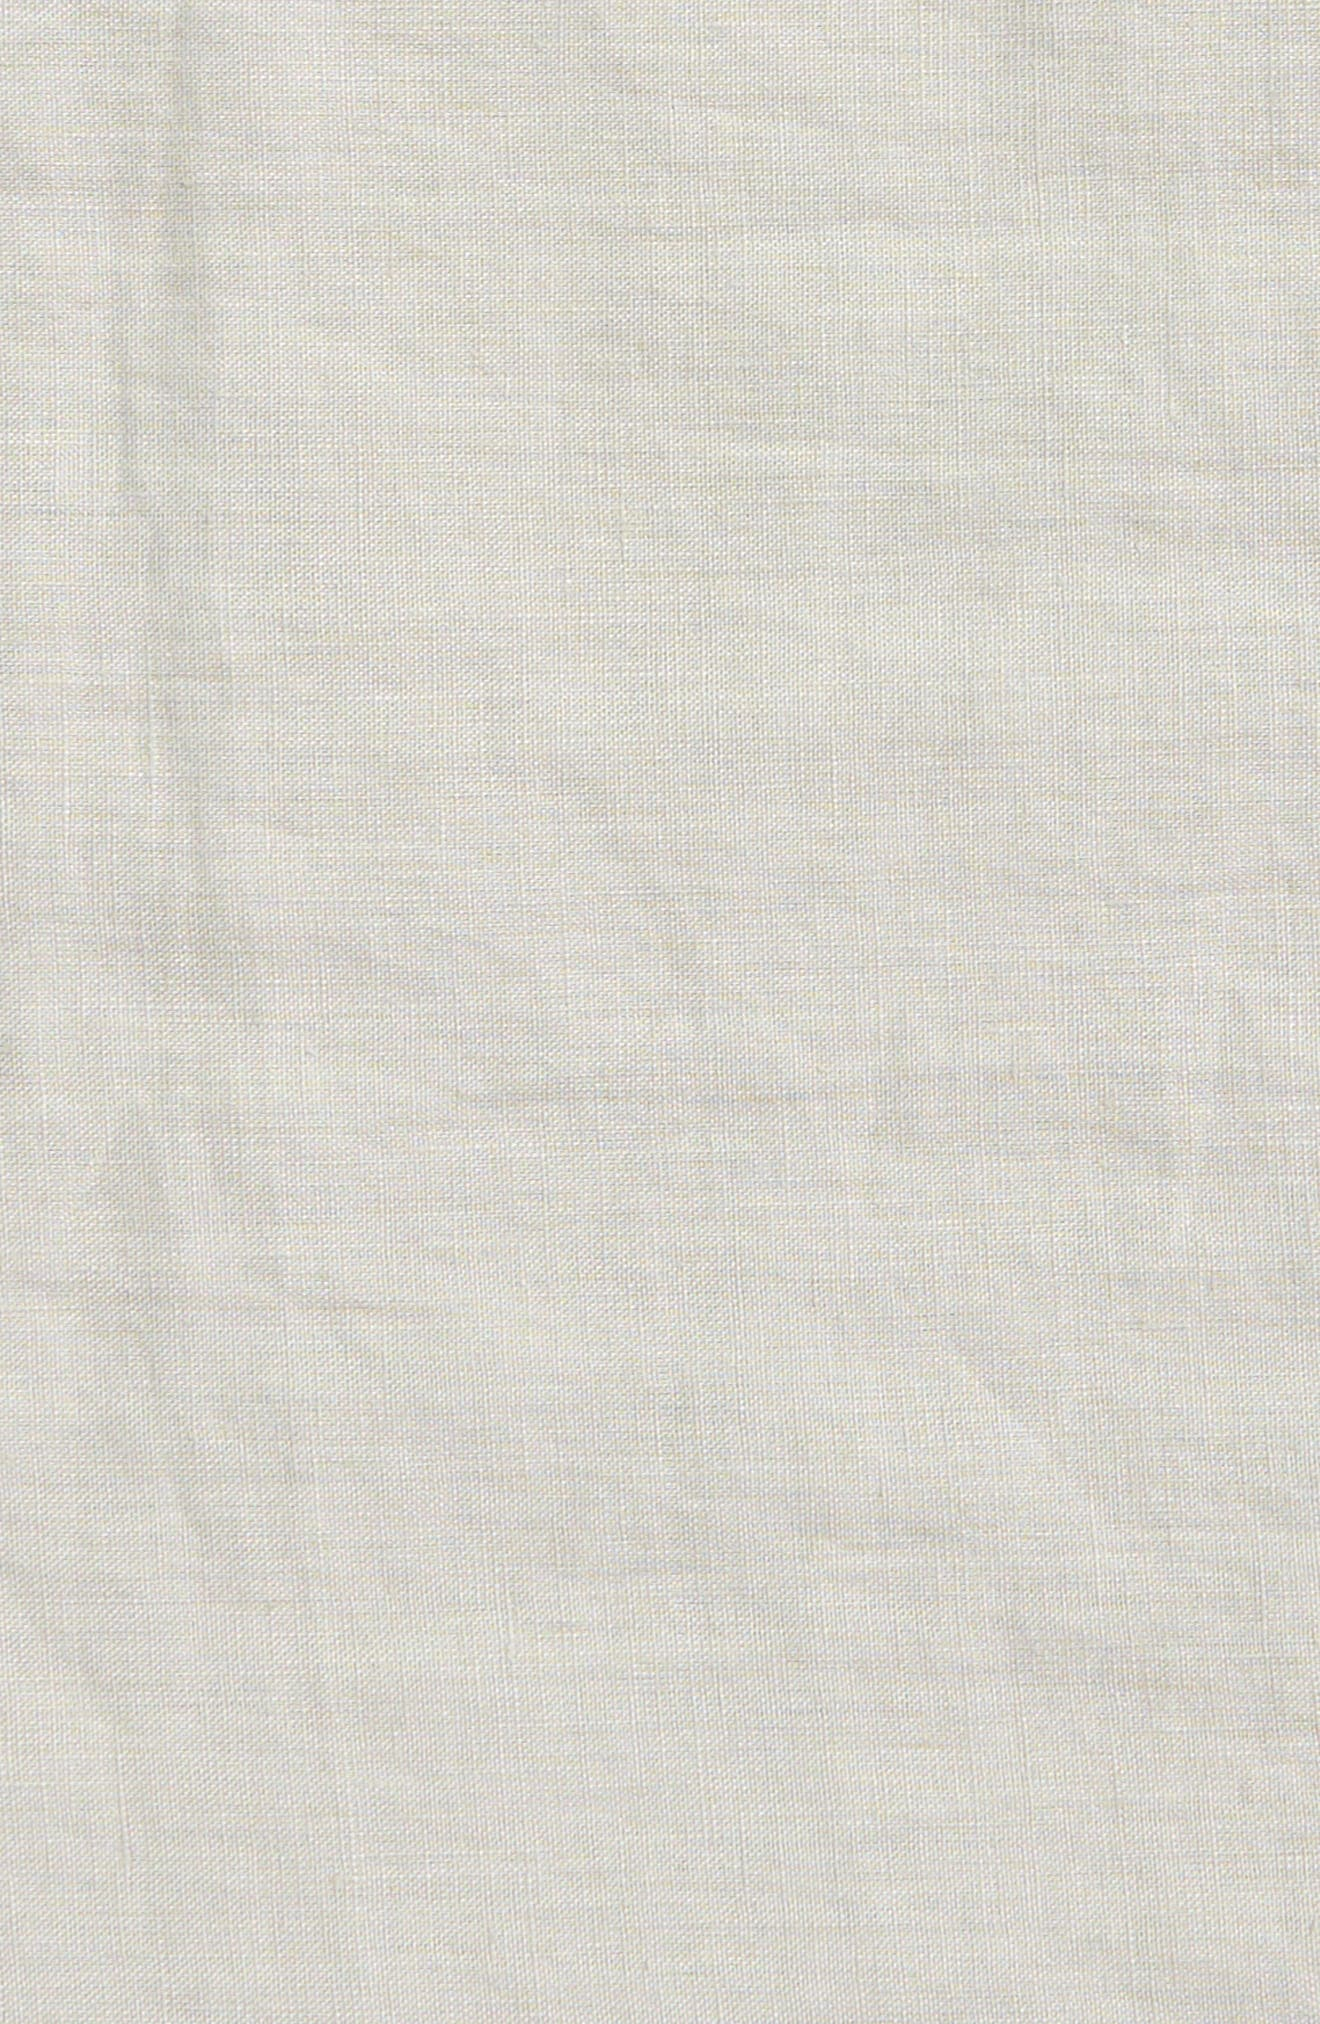 Washed Linen Tablecloth,                             Alternate thumbnail 2, color,                             020